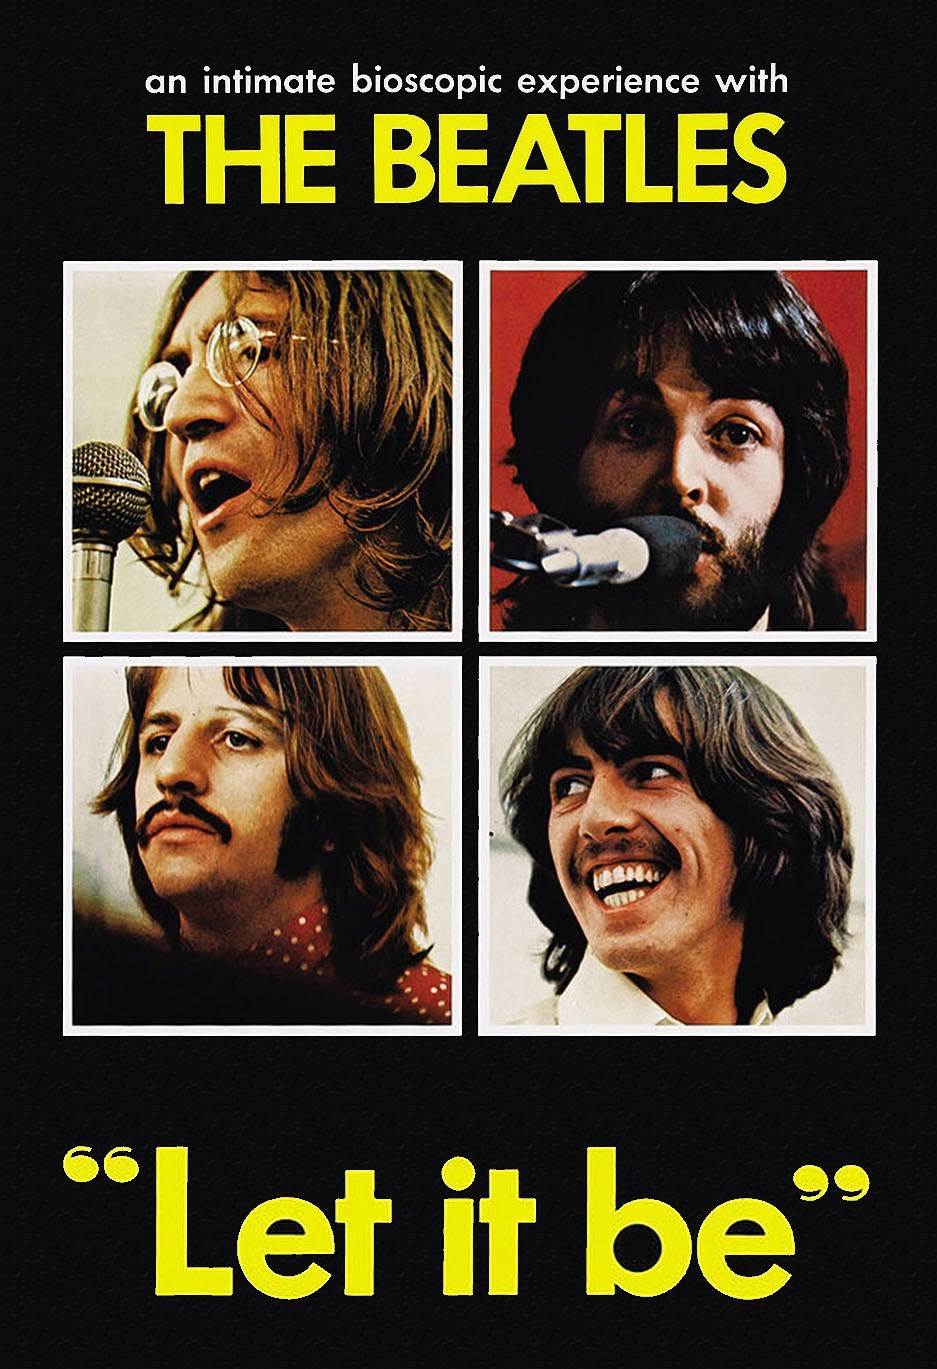 The Beatles - LET IT BE (1970) - Album REVIEW 💿🎭 - YouTube